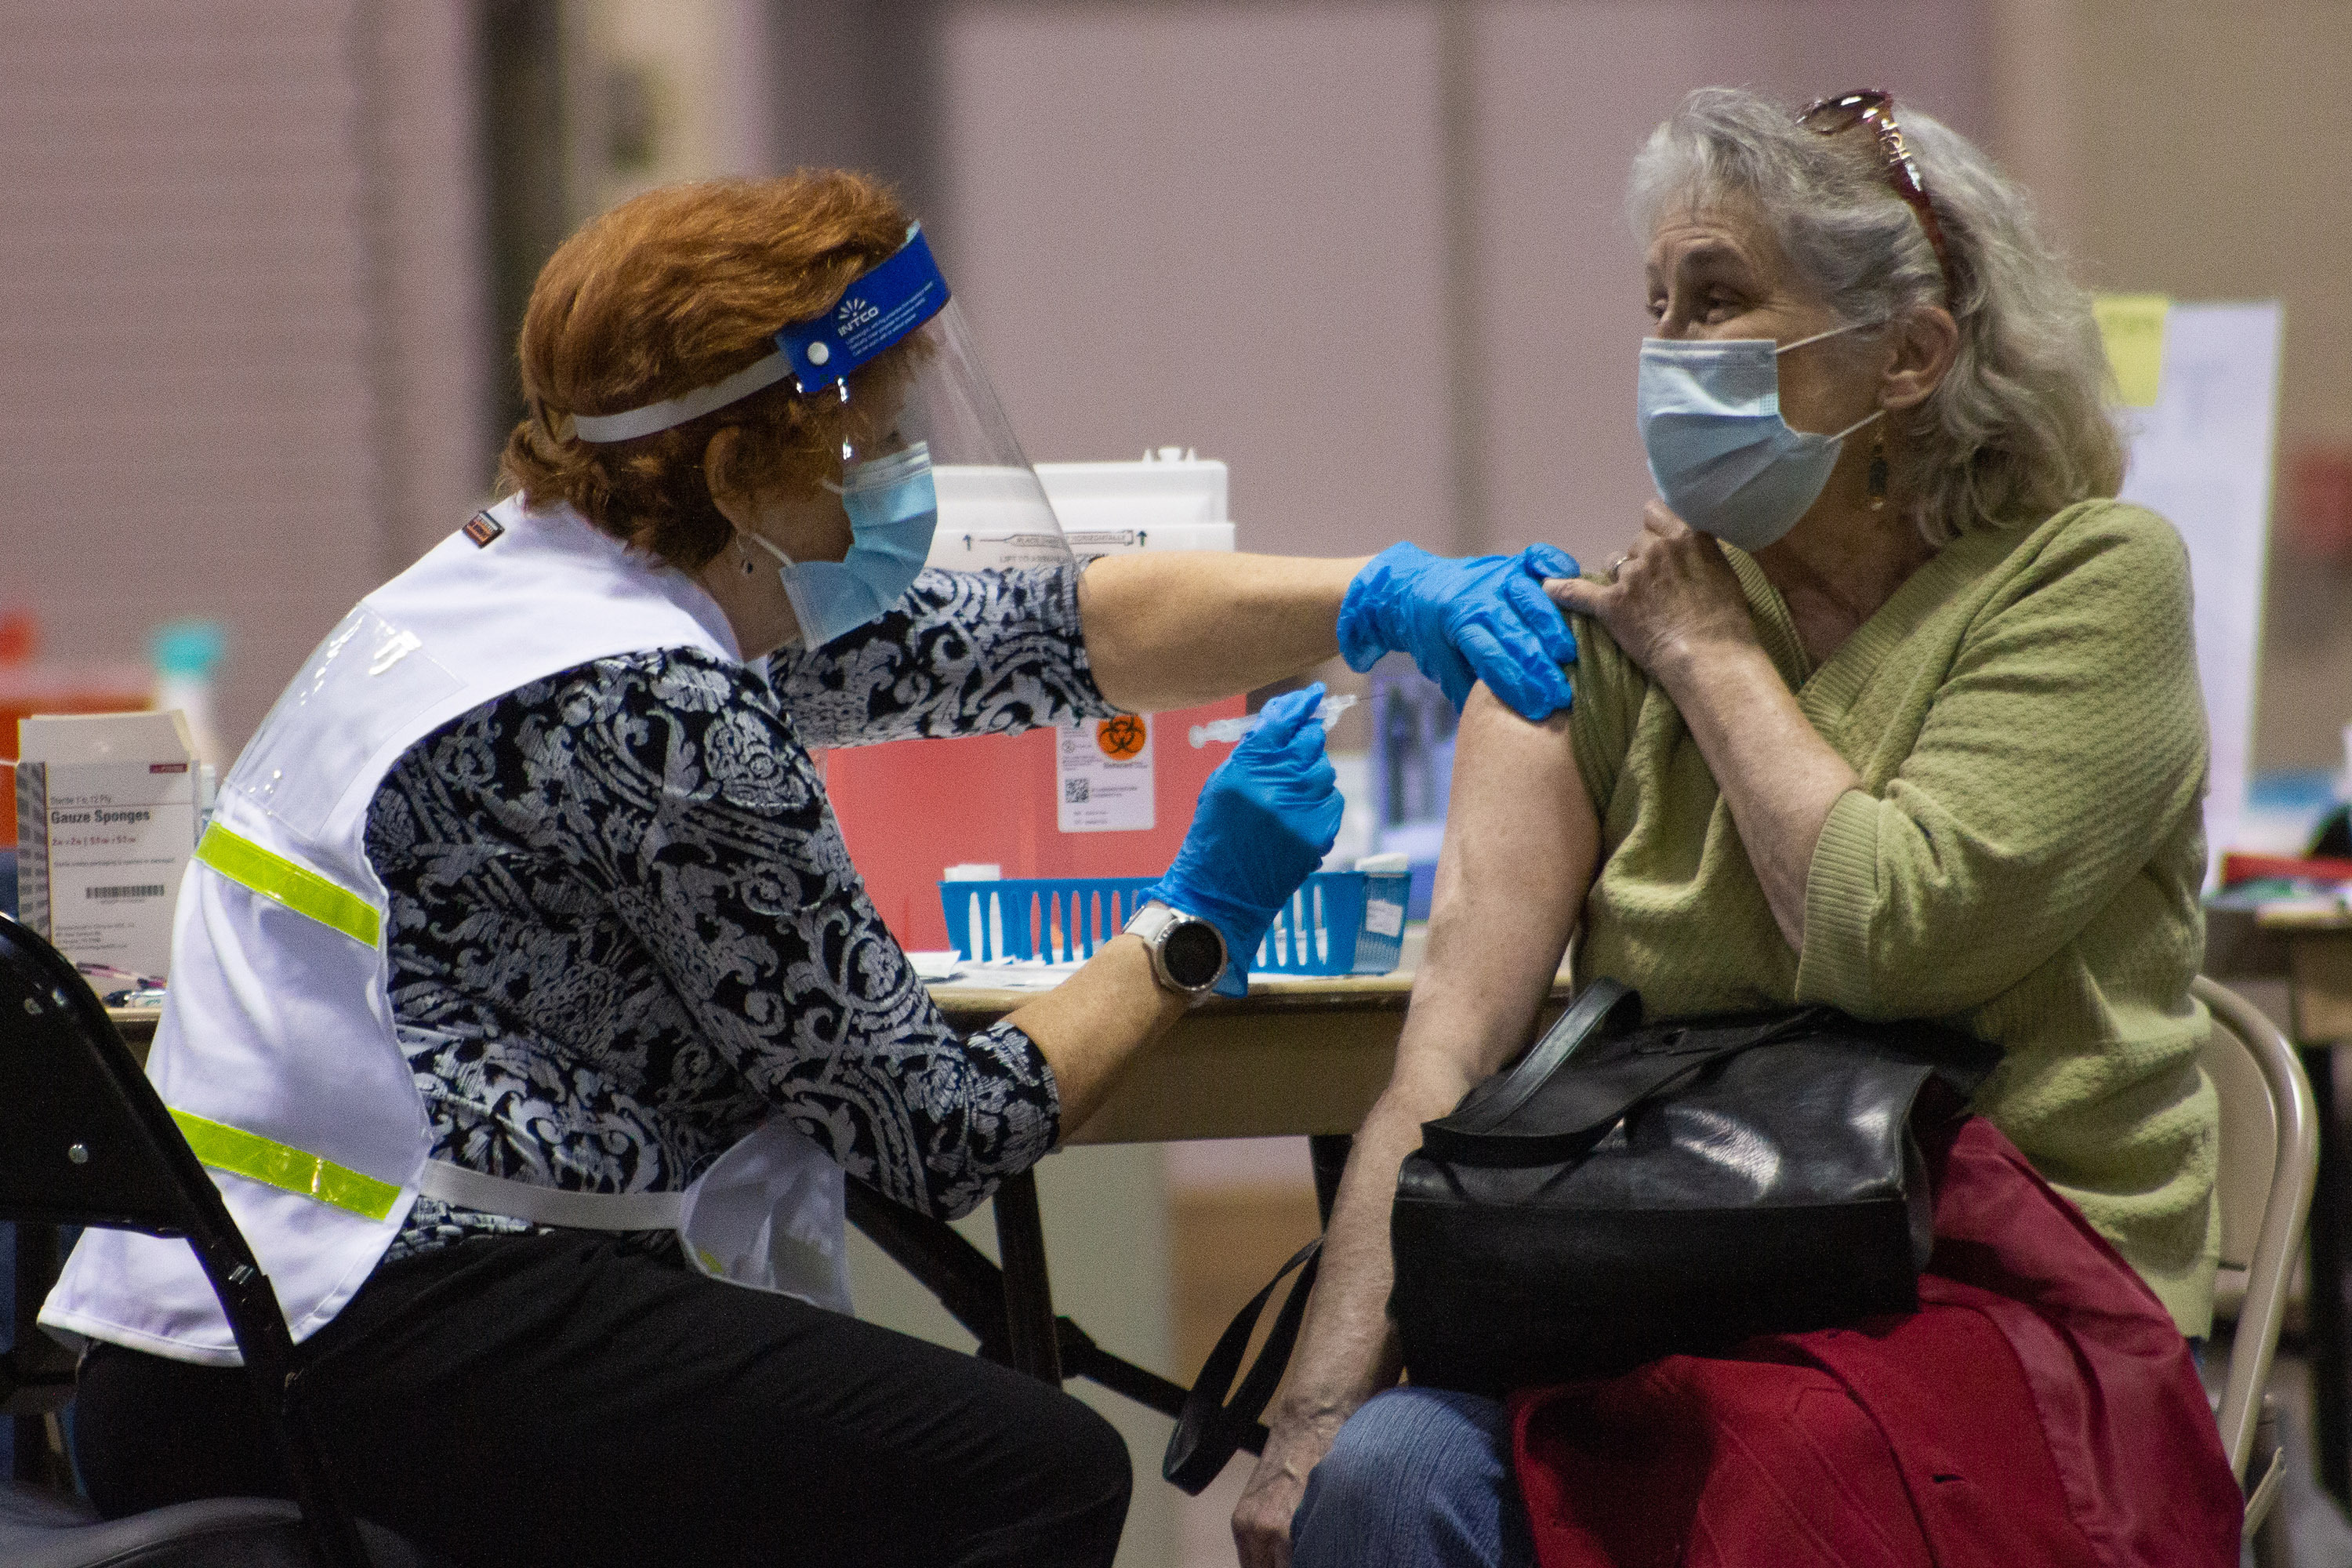 A woman receives a dose of the COVID-19 vaccine from a volunteer nurse.